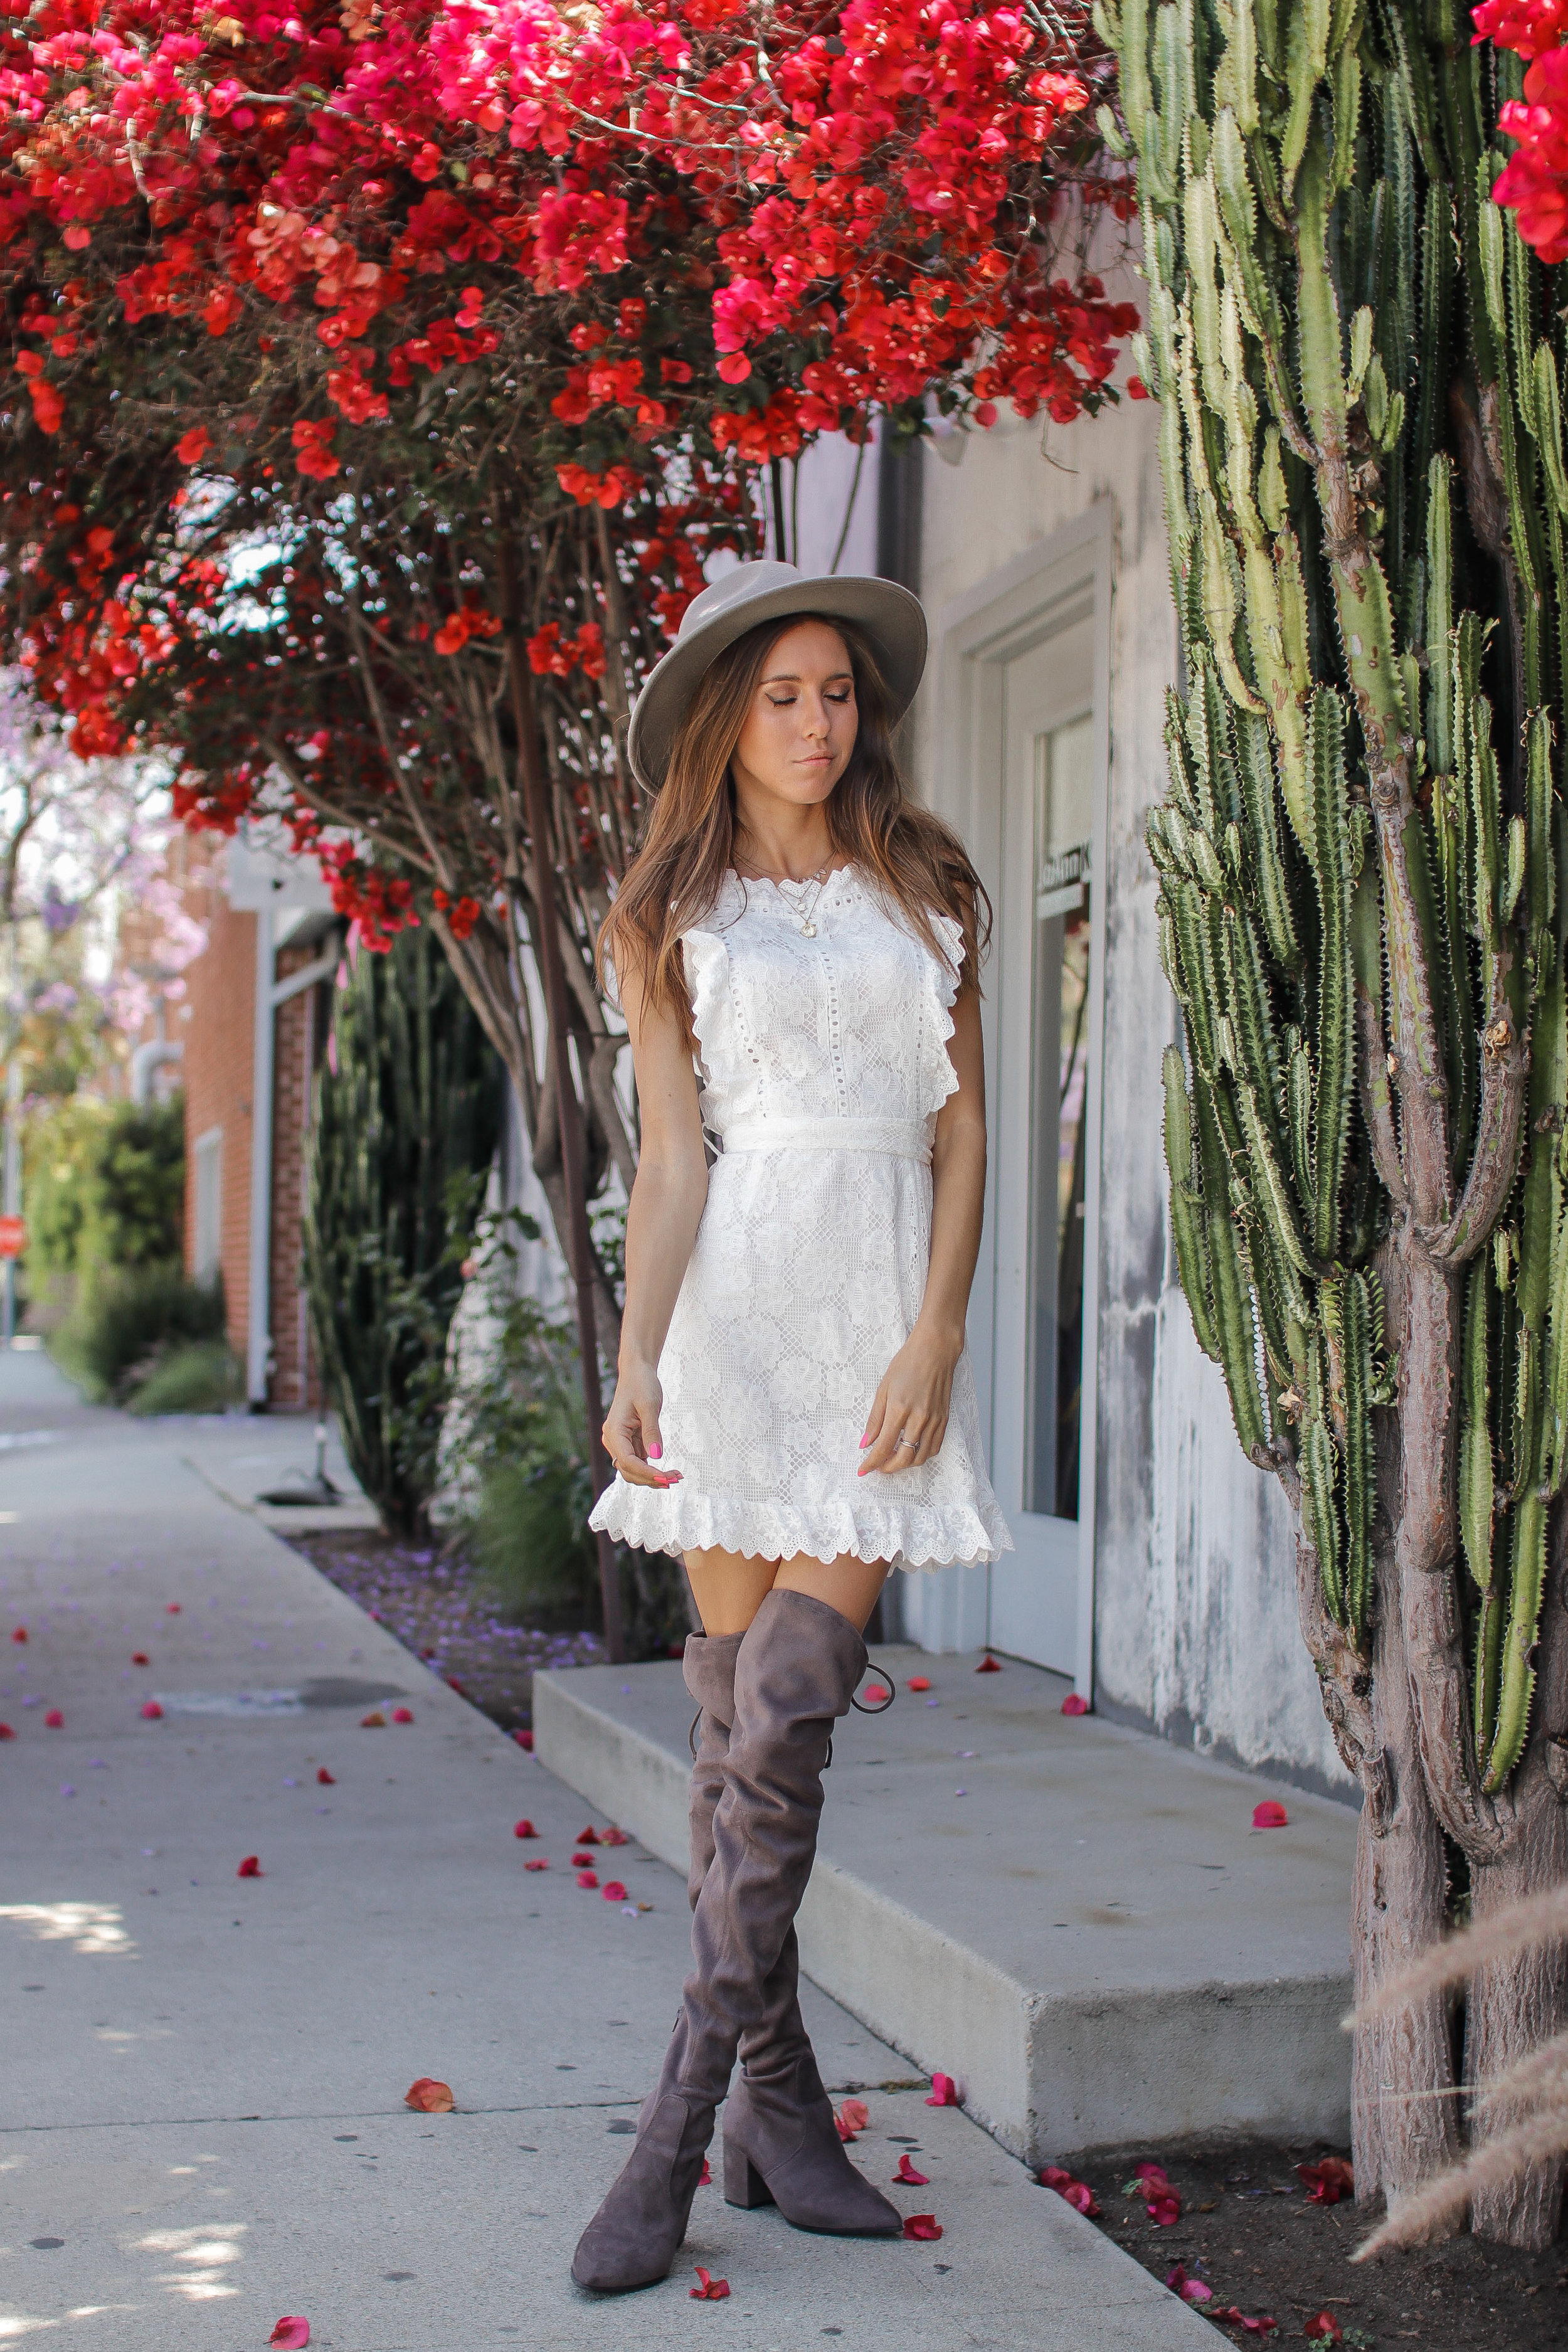 The Hungarian Brunette - MY NEW FAVOURITE WHITE LACE APRON DRESS (P.S. IT'S SUPER AFFORDABLE & FROM AMAZON!!)